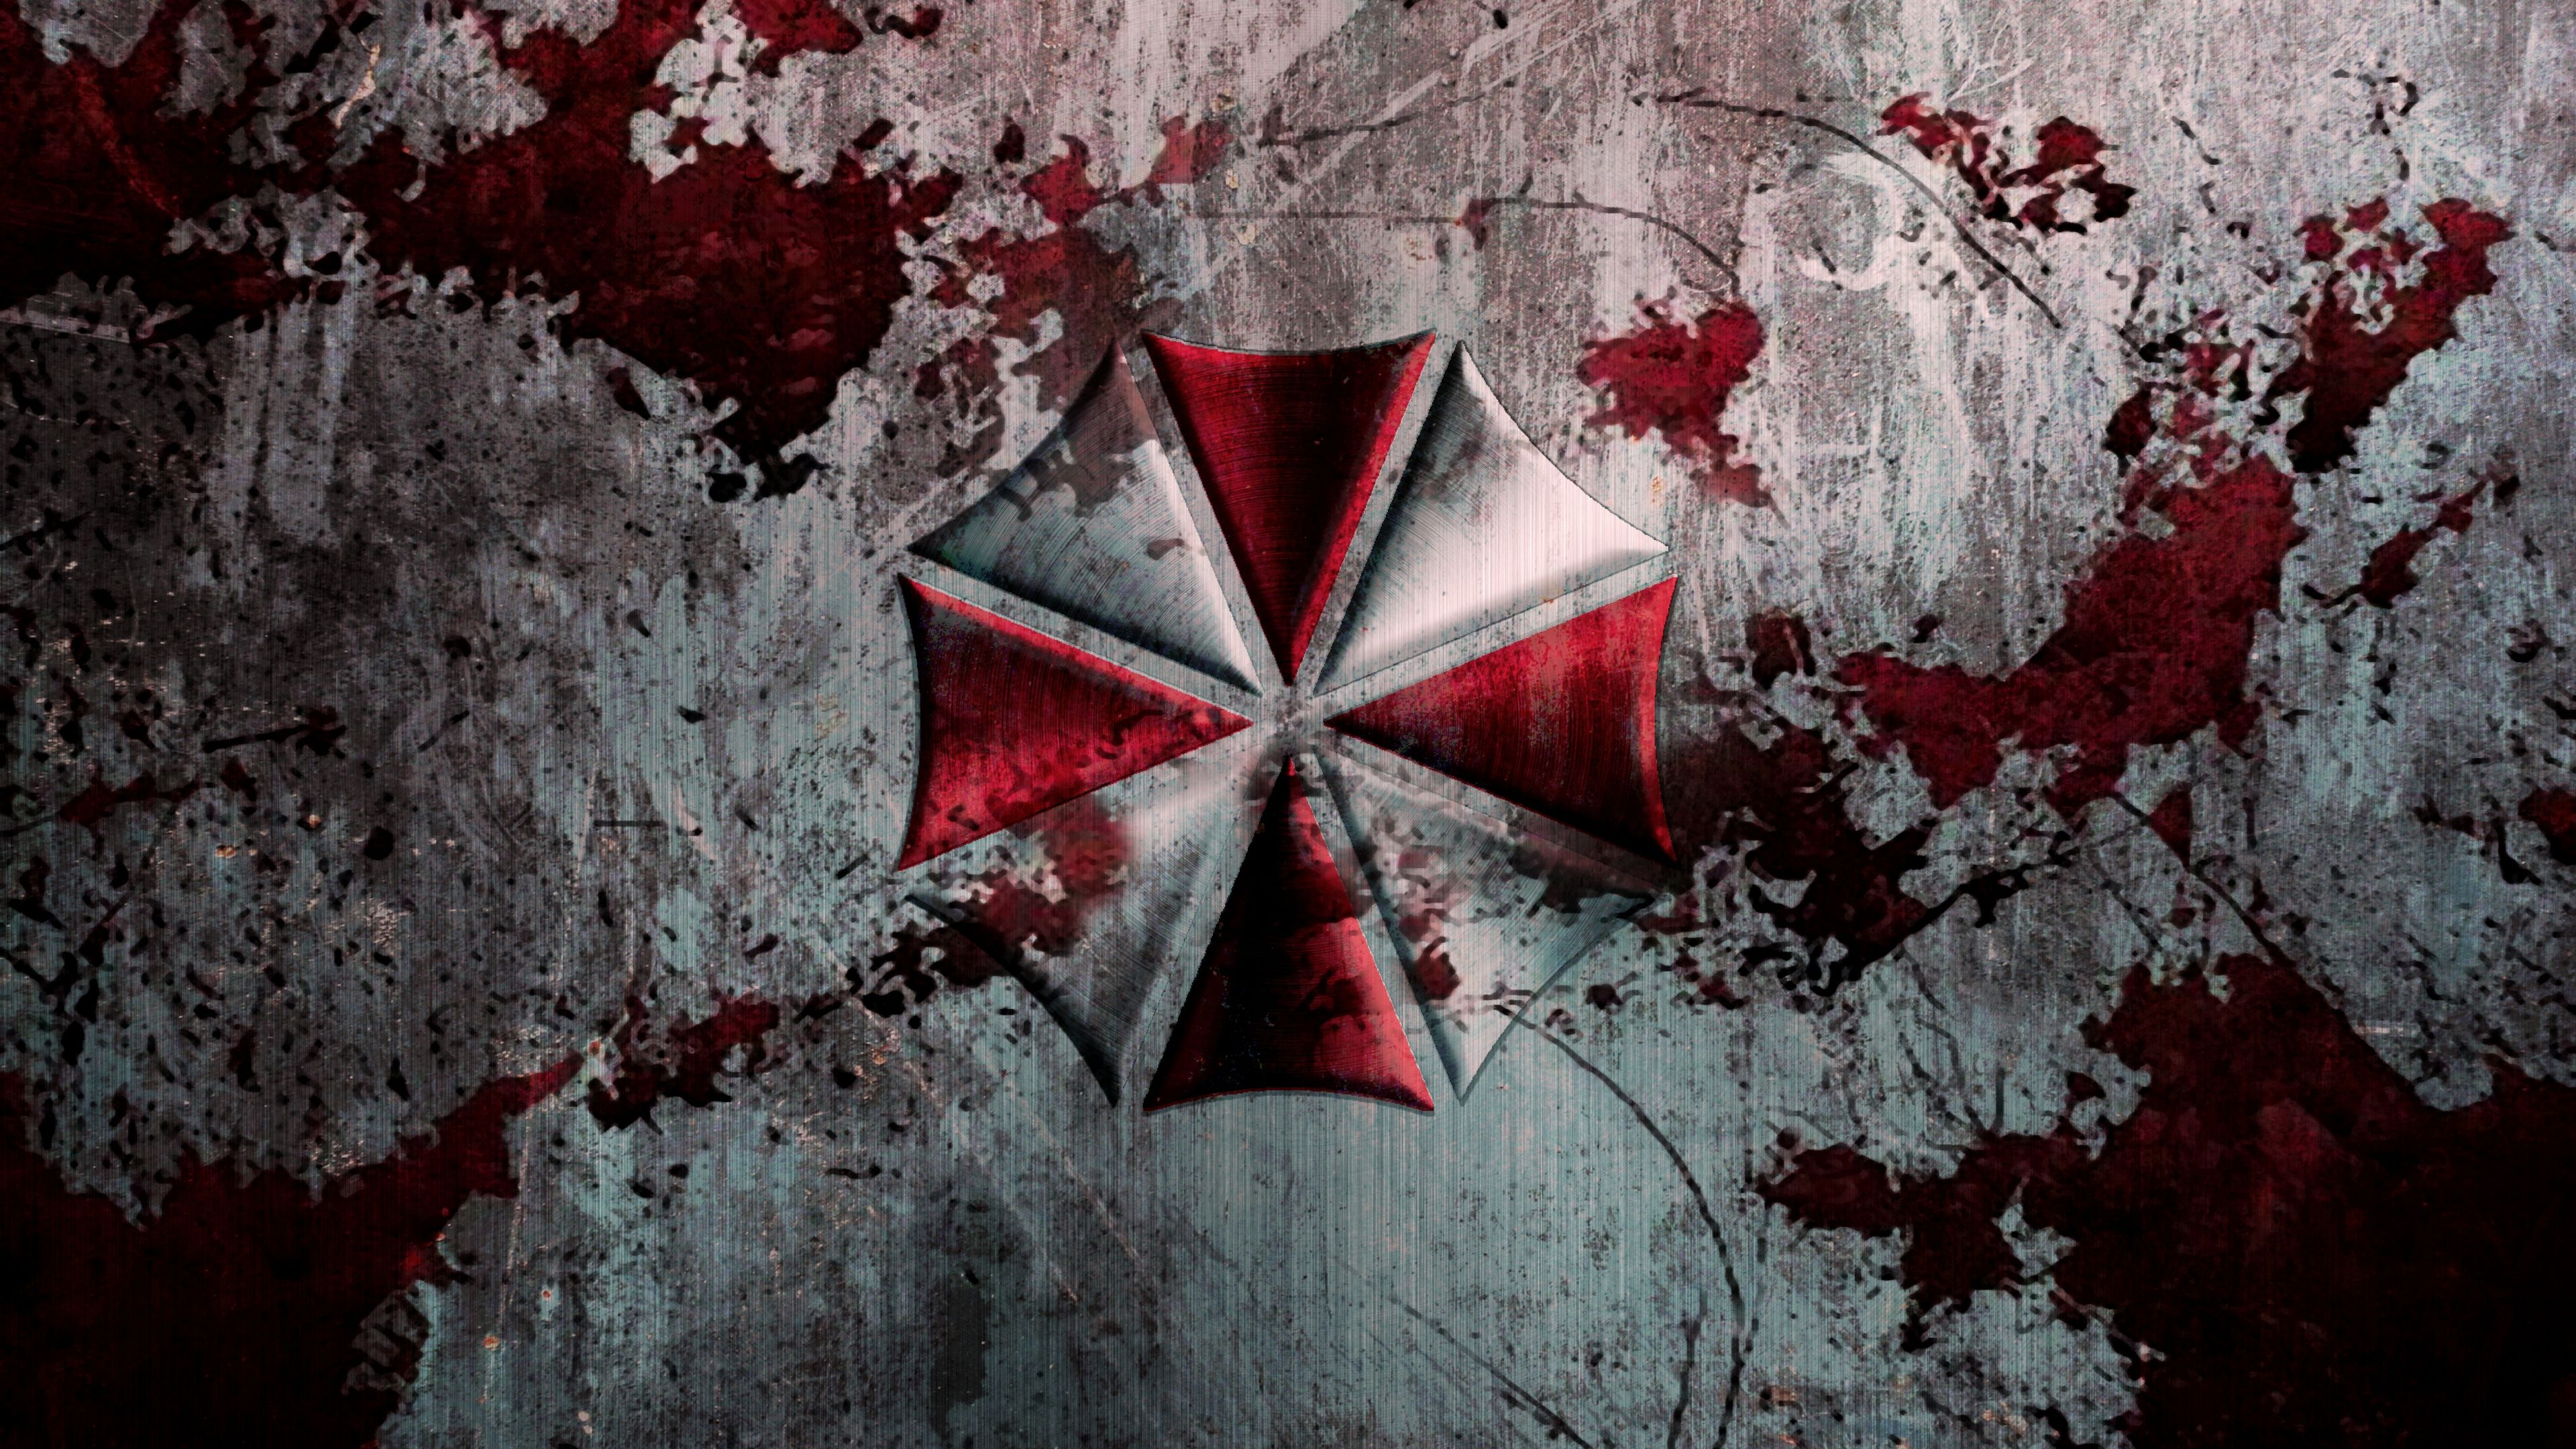 Wallpaper 3840x2160 Resident Evil Umbrella Corporation 4k Ultra Hd Hd Resident Evil Movie Resident Evil Game Resident Evil